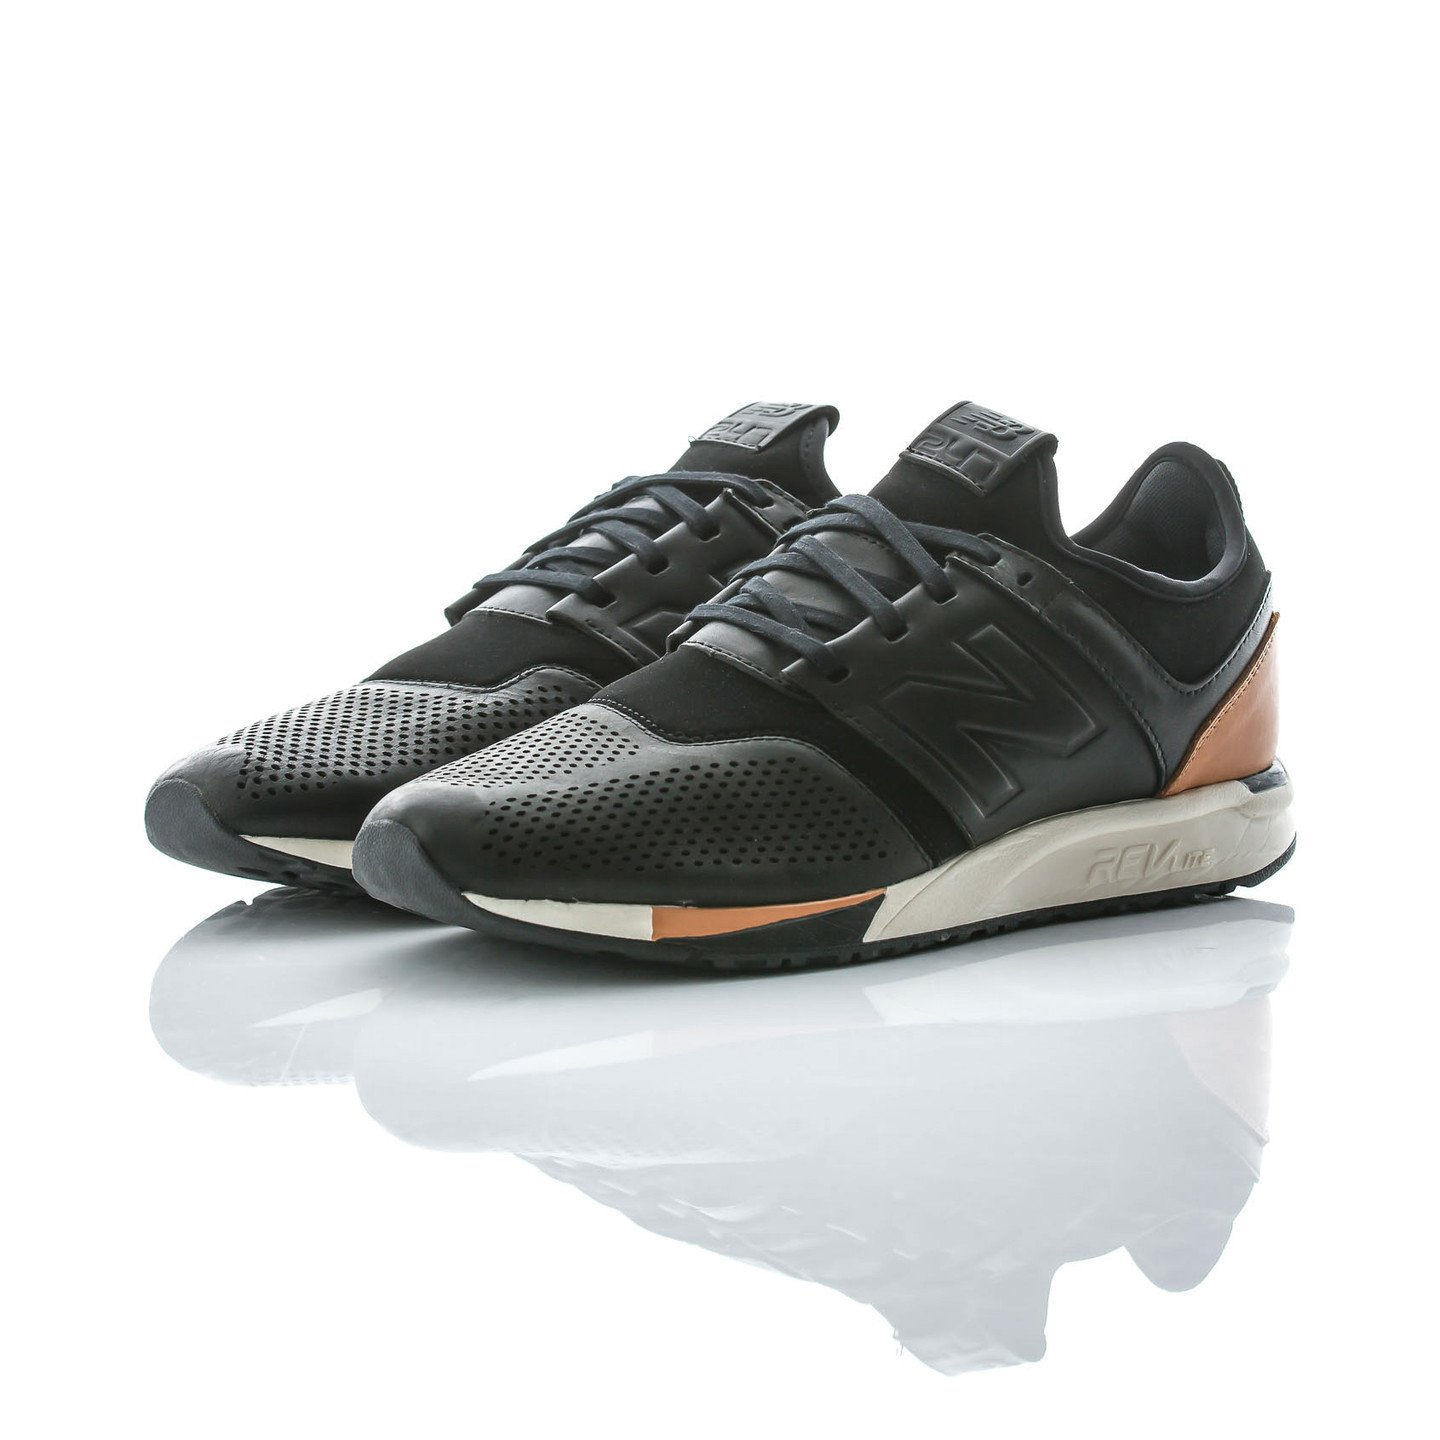 New Balance MRL 247 'Luxe Pack' Black / Brown / Cream MRL247BL-45